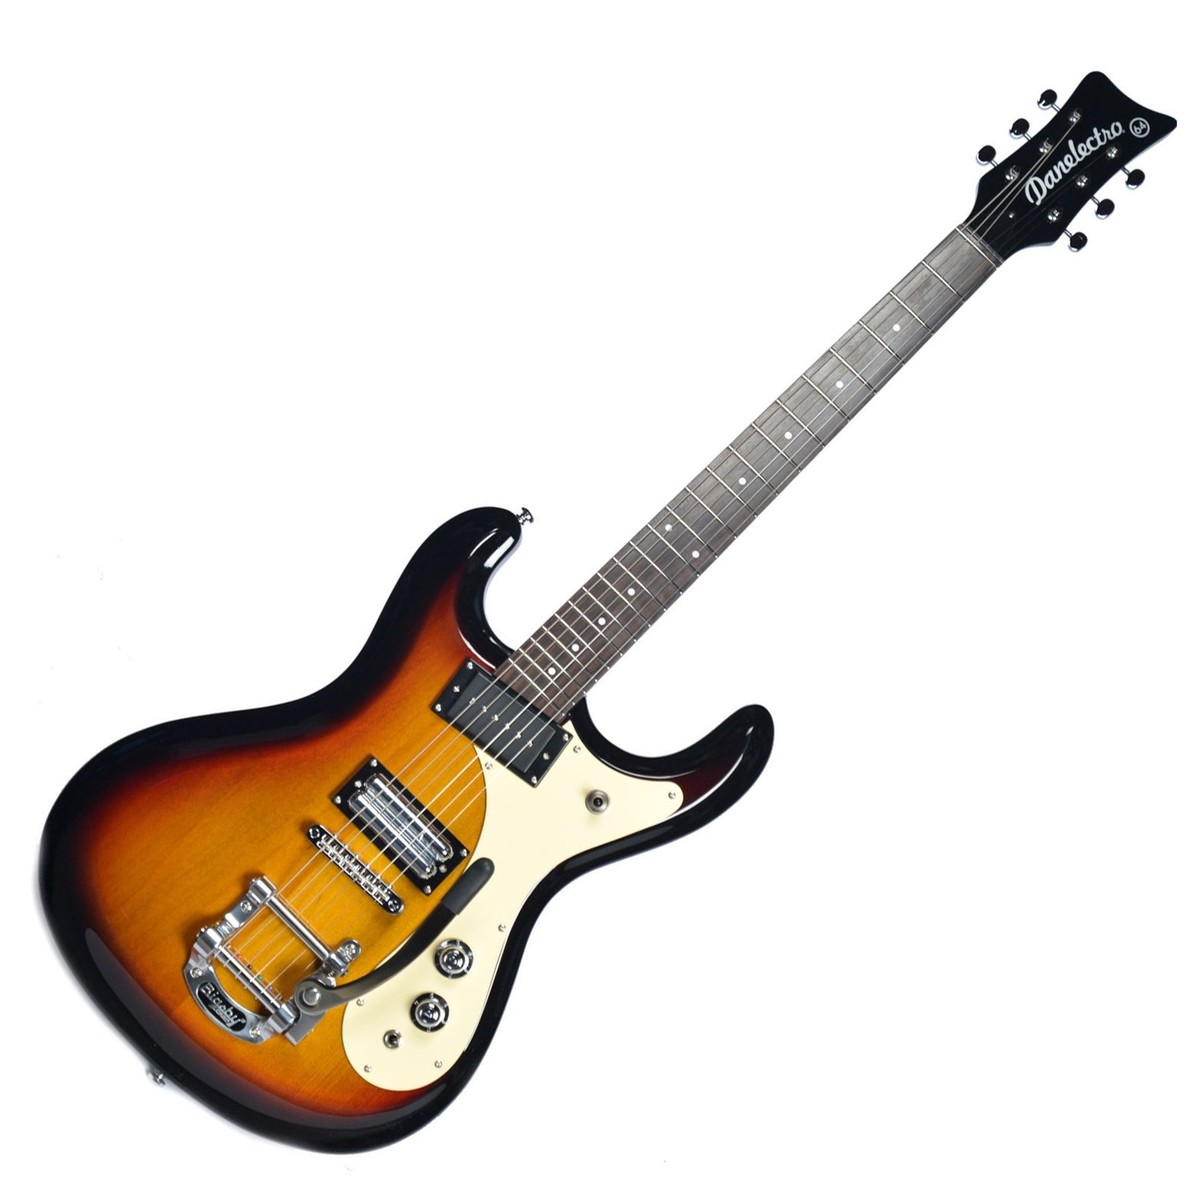 danelectro 64 electric guitar 3 tone sunburst b stock at gear4music. Black Bedroom Furniture Sets. Home Design Ideas